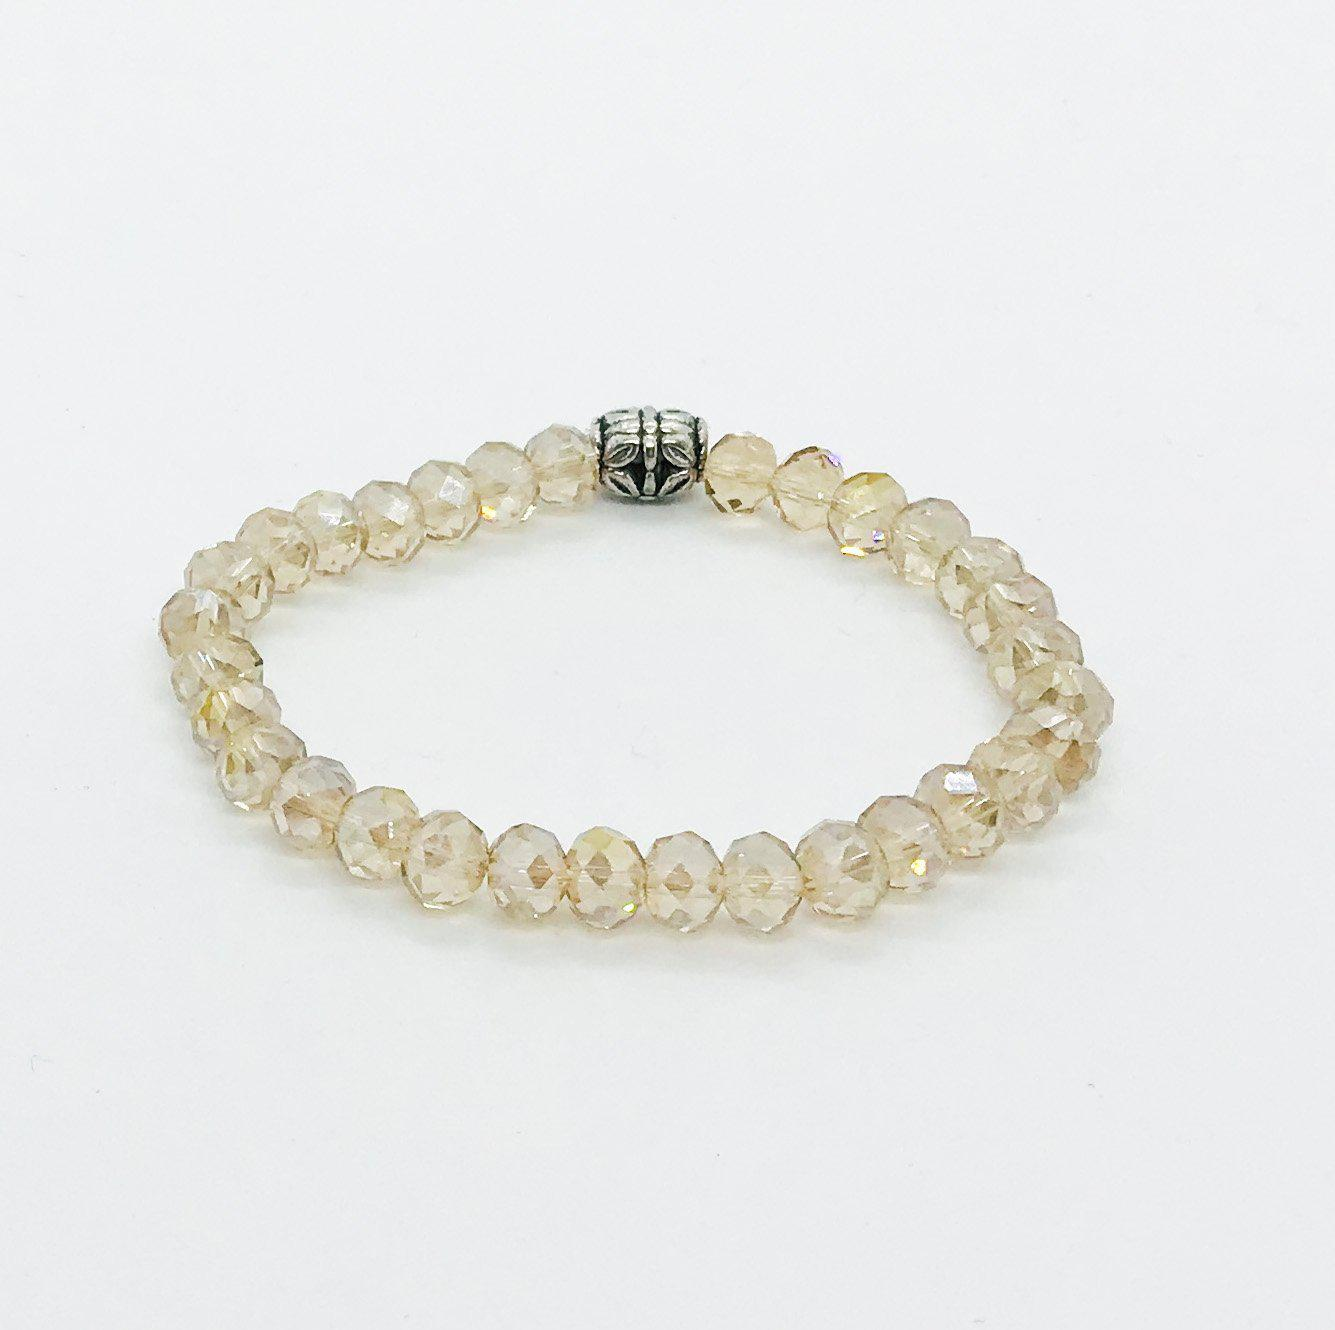 Glass Bead Stretchy Bracelet - B1054